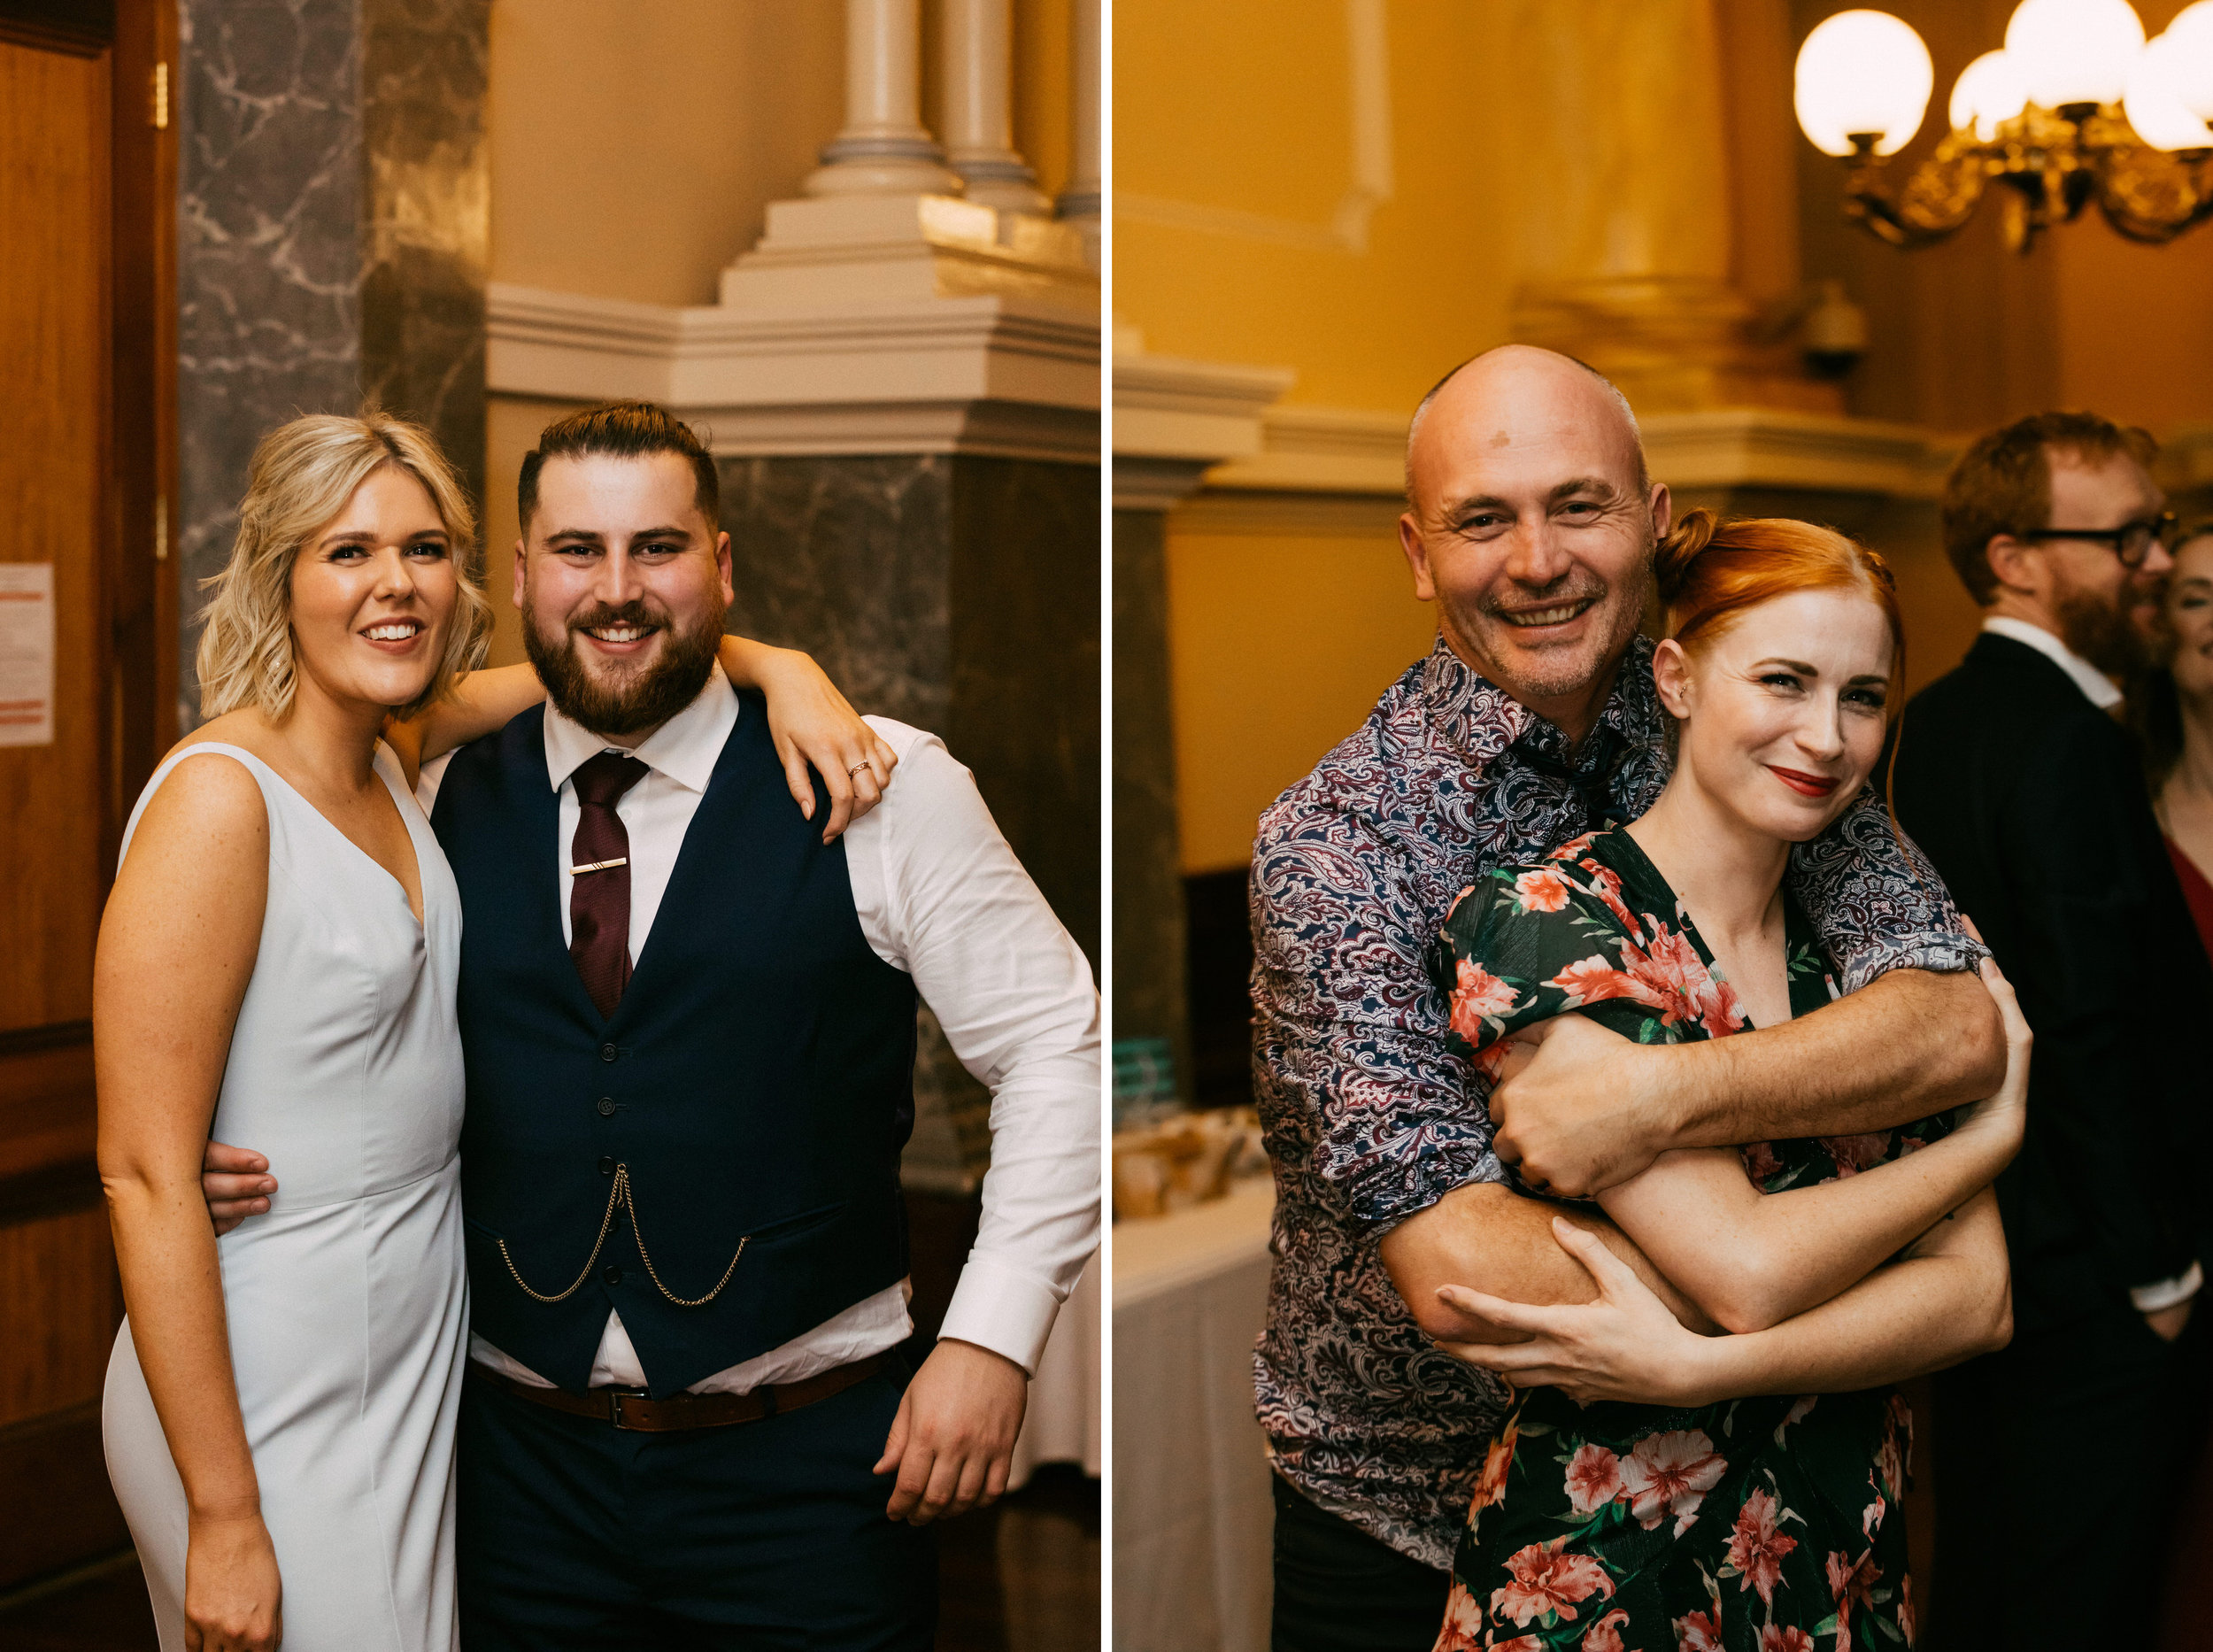 Adelaide Wedding 2019 176.jpg